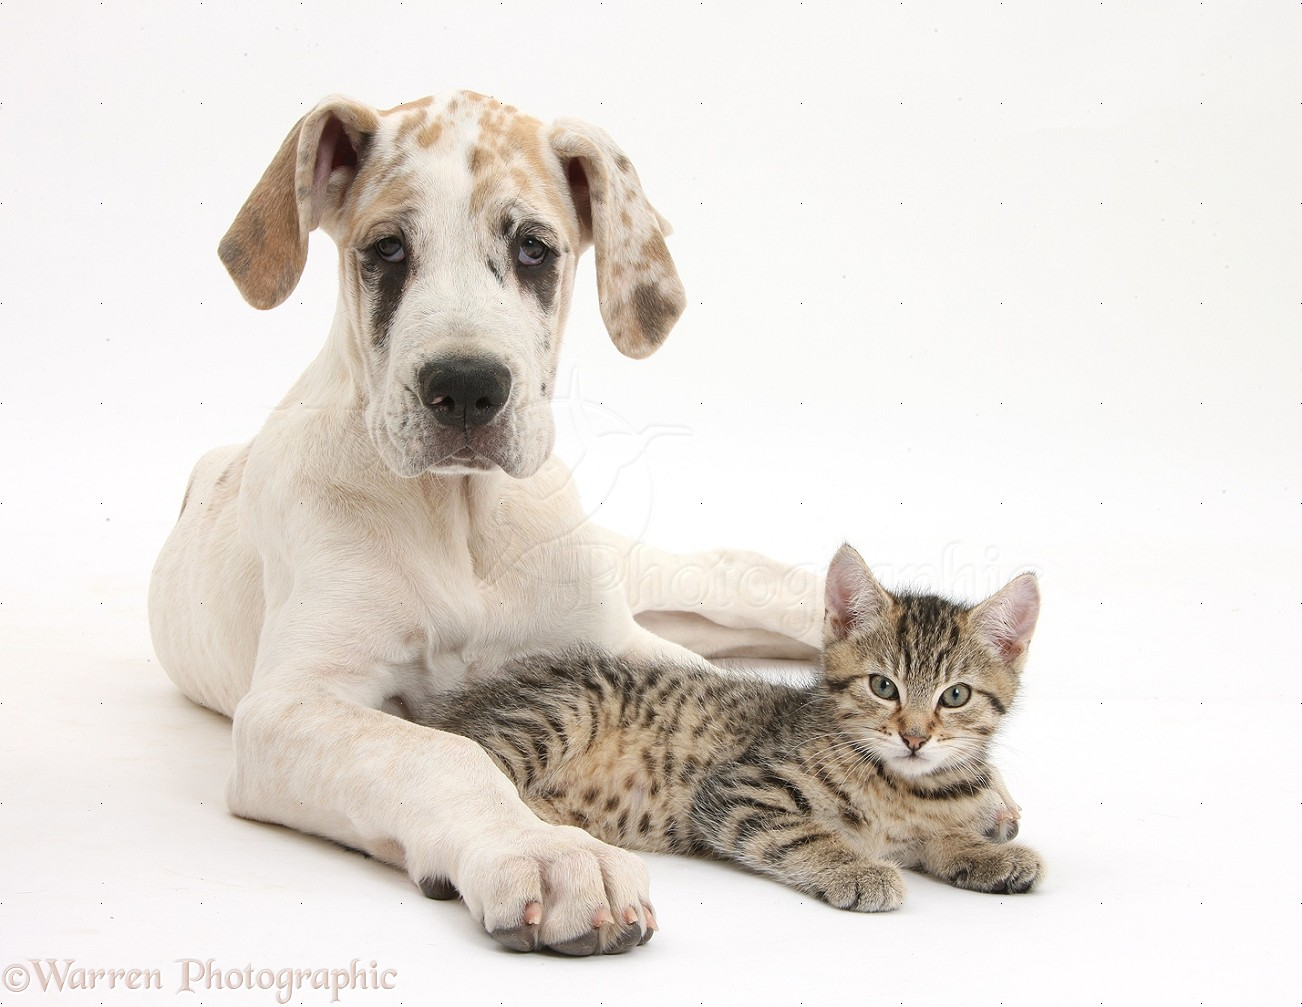 Wp37127 cute tabby kitten stanley 10 weeks old with great dane pup